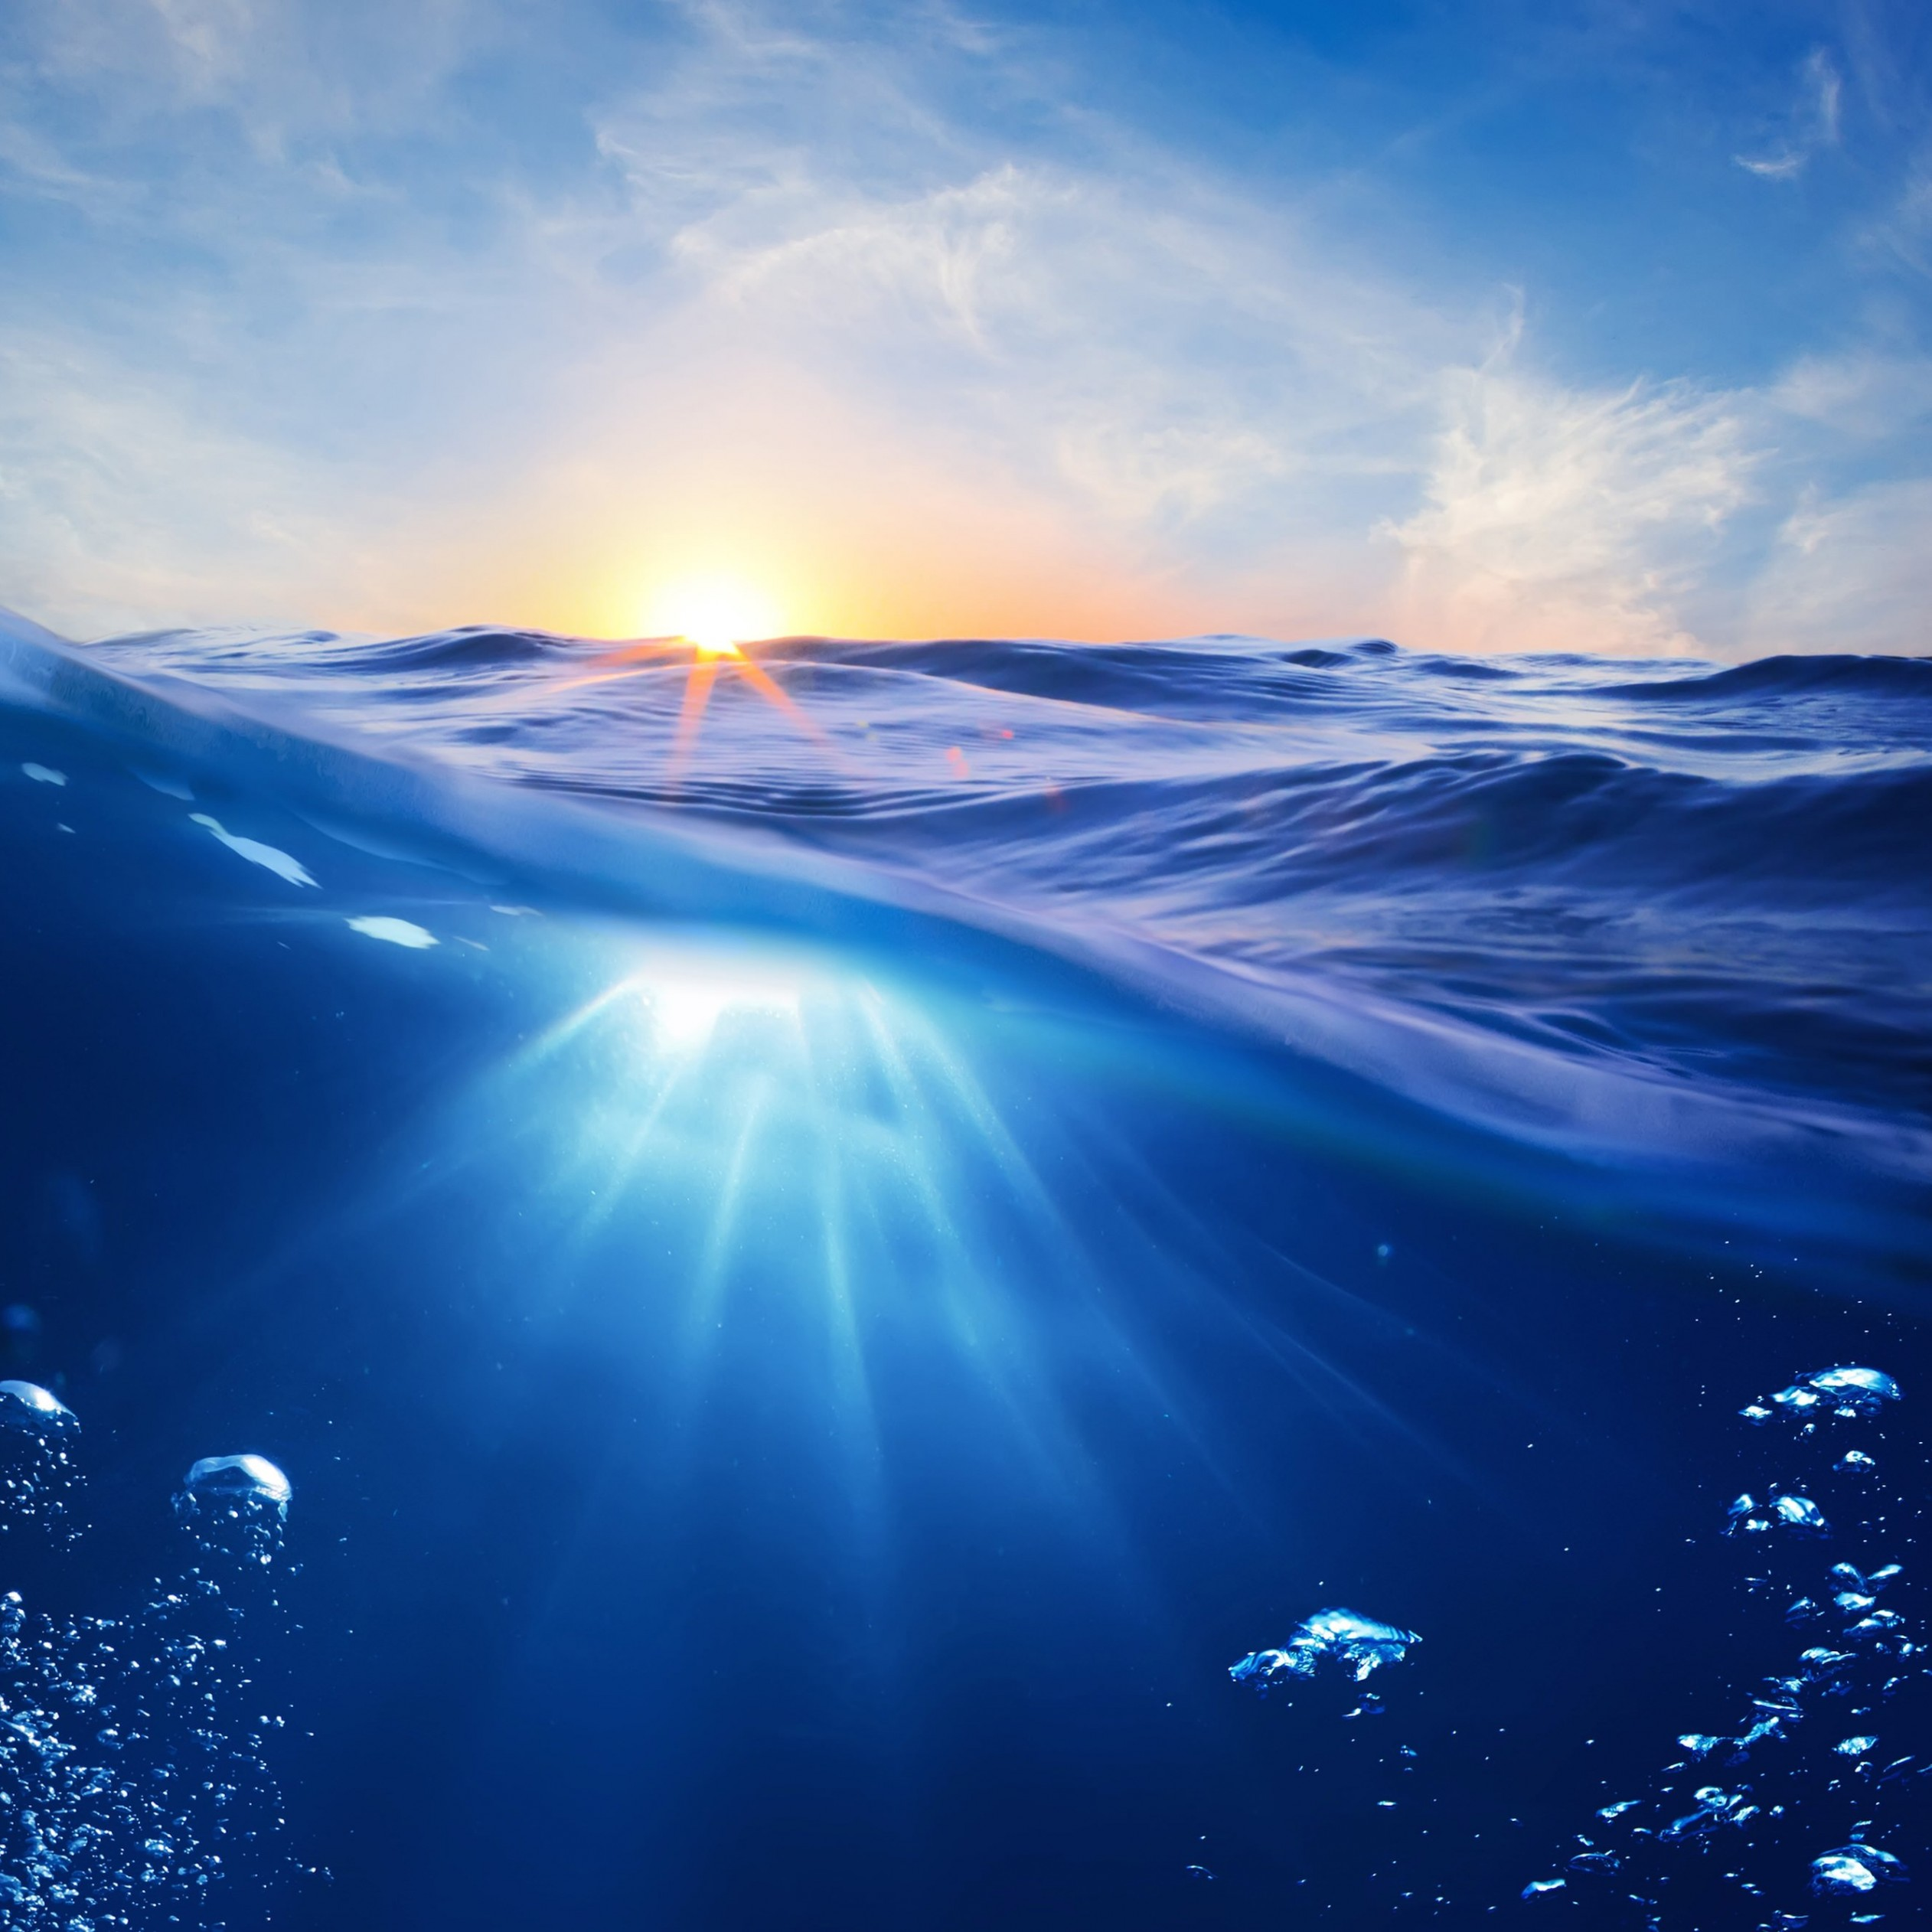 Sunrise Half Underwater Wallpaper for Apple iPad Air